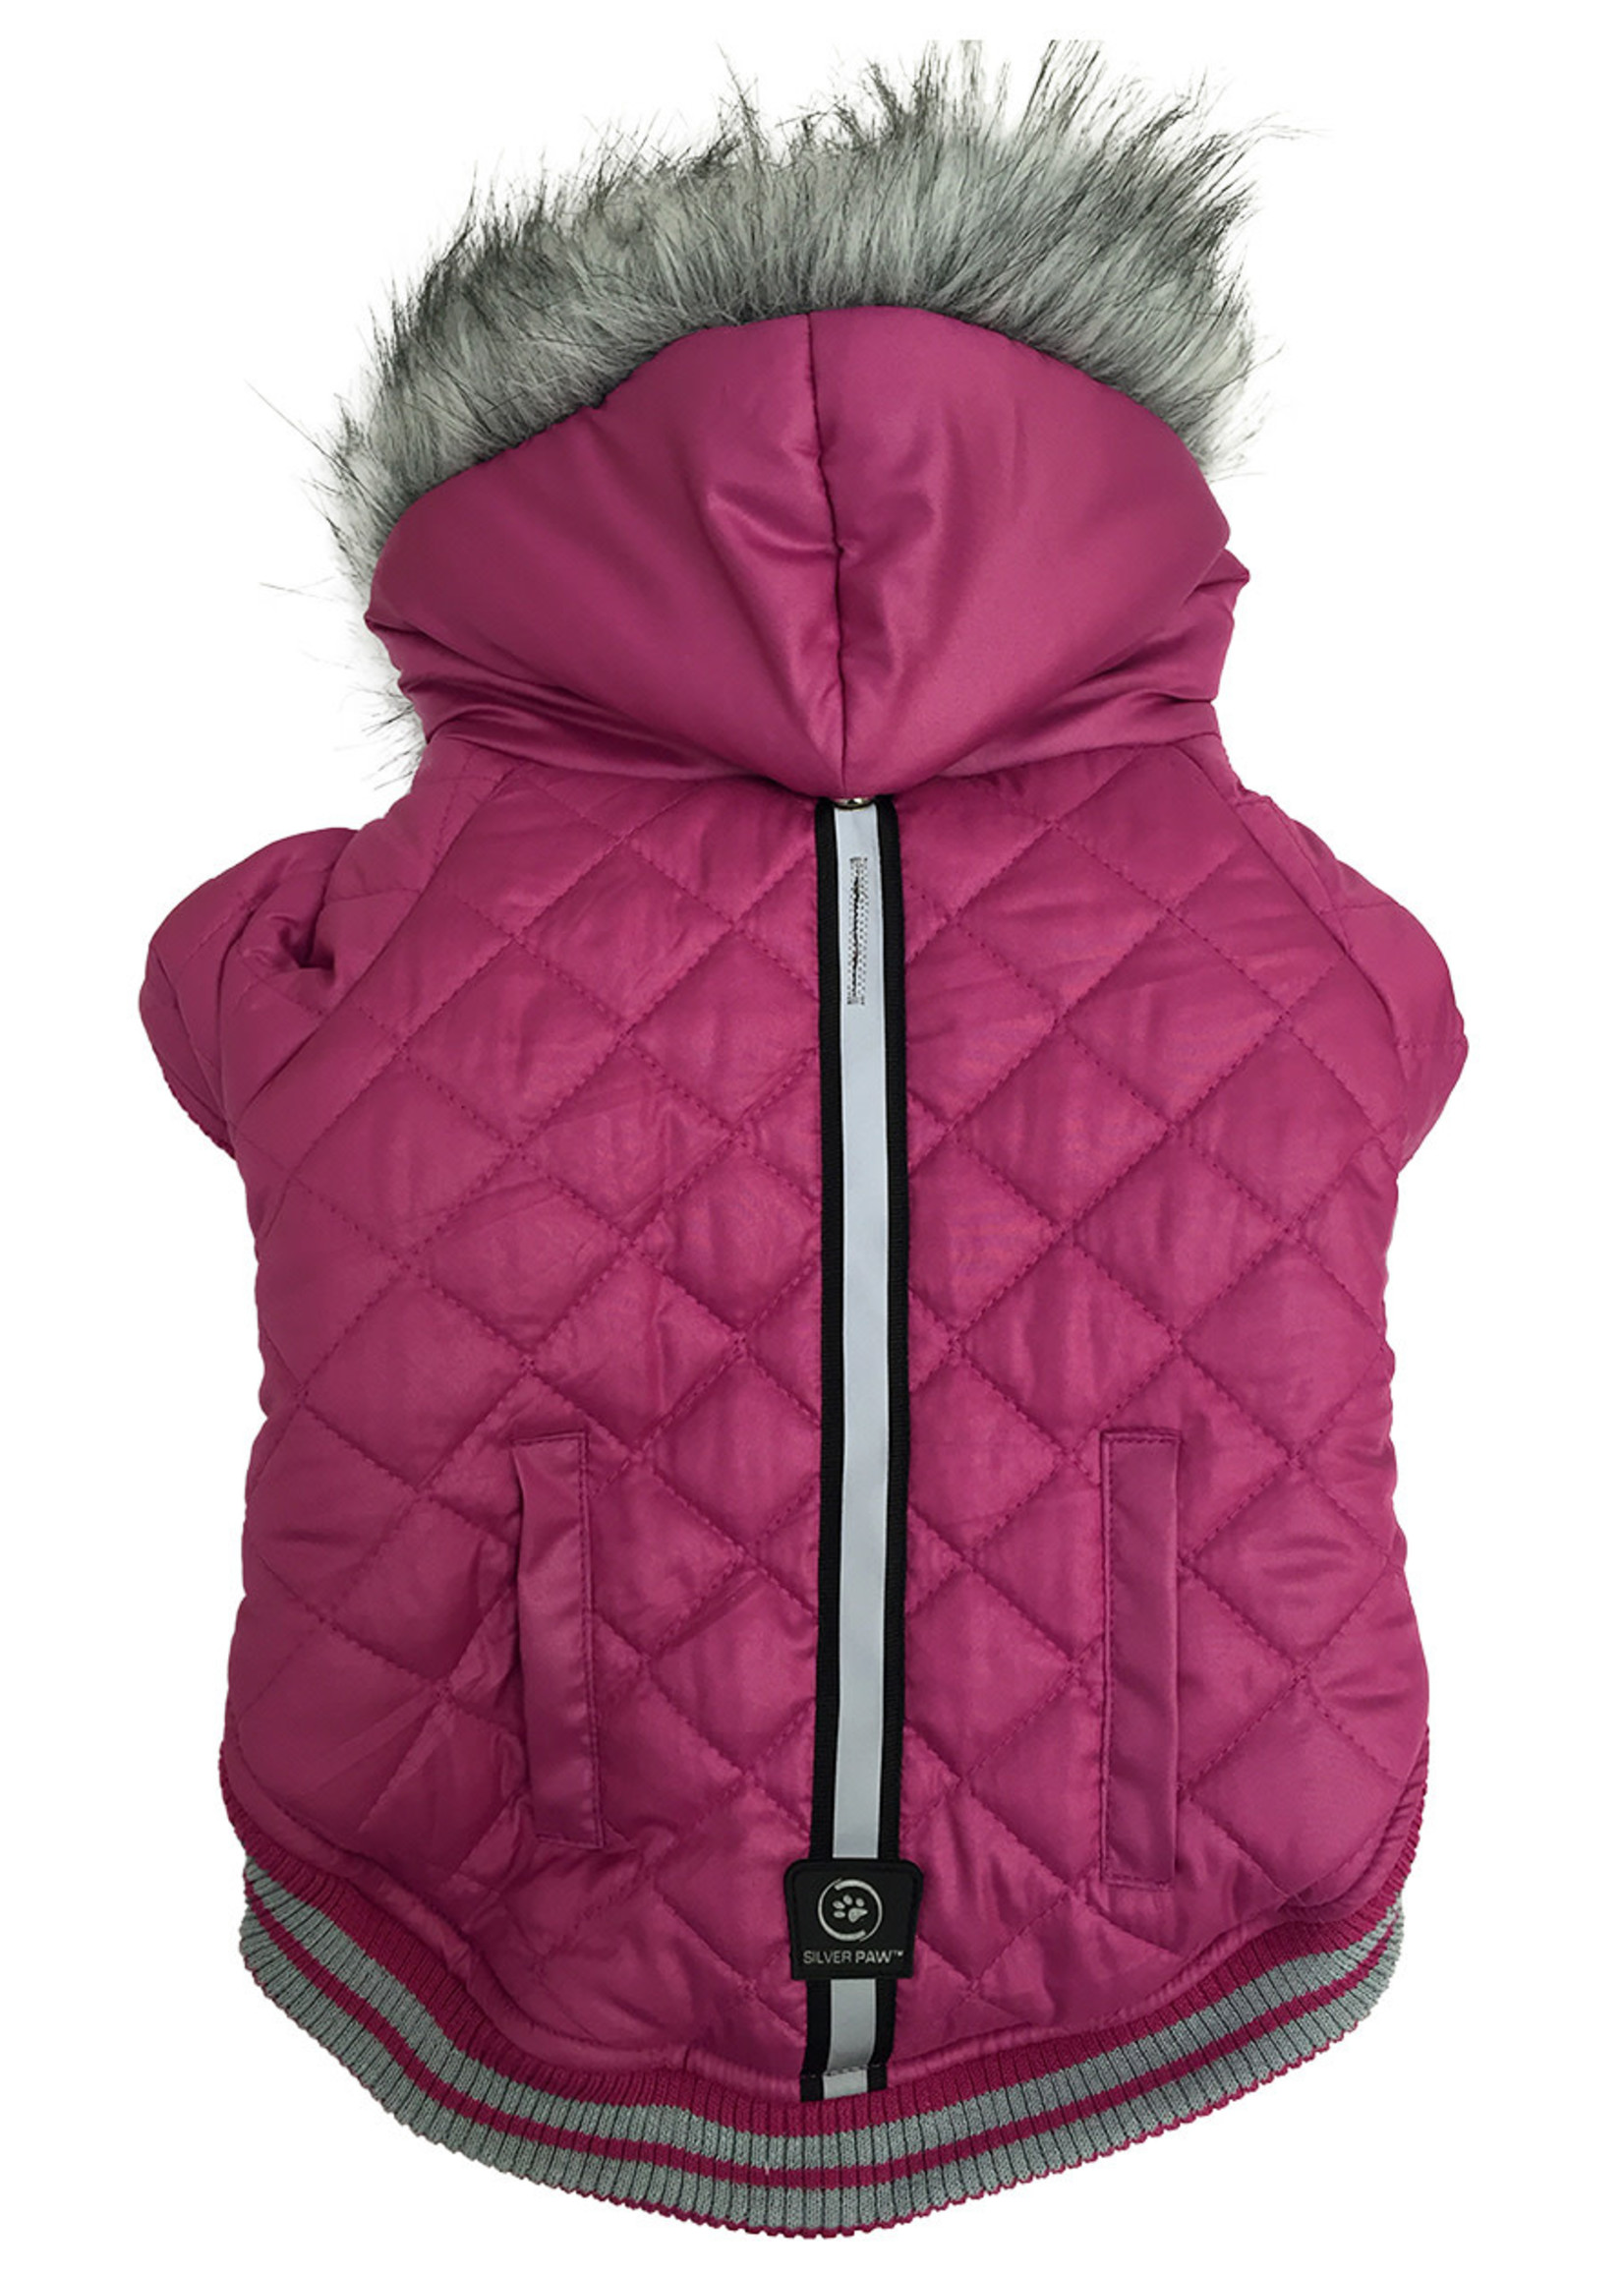 Protect Me - Alert Series Silver Paw™ Hooded Parka X-Small